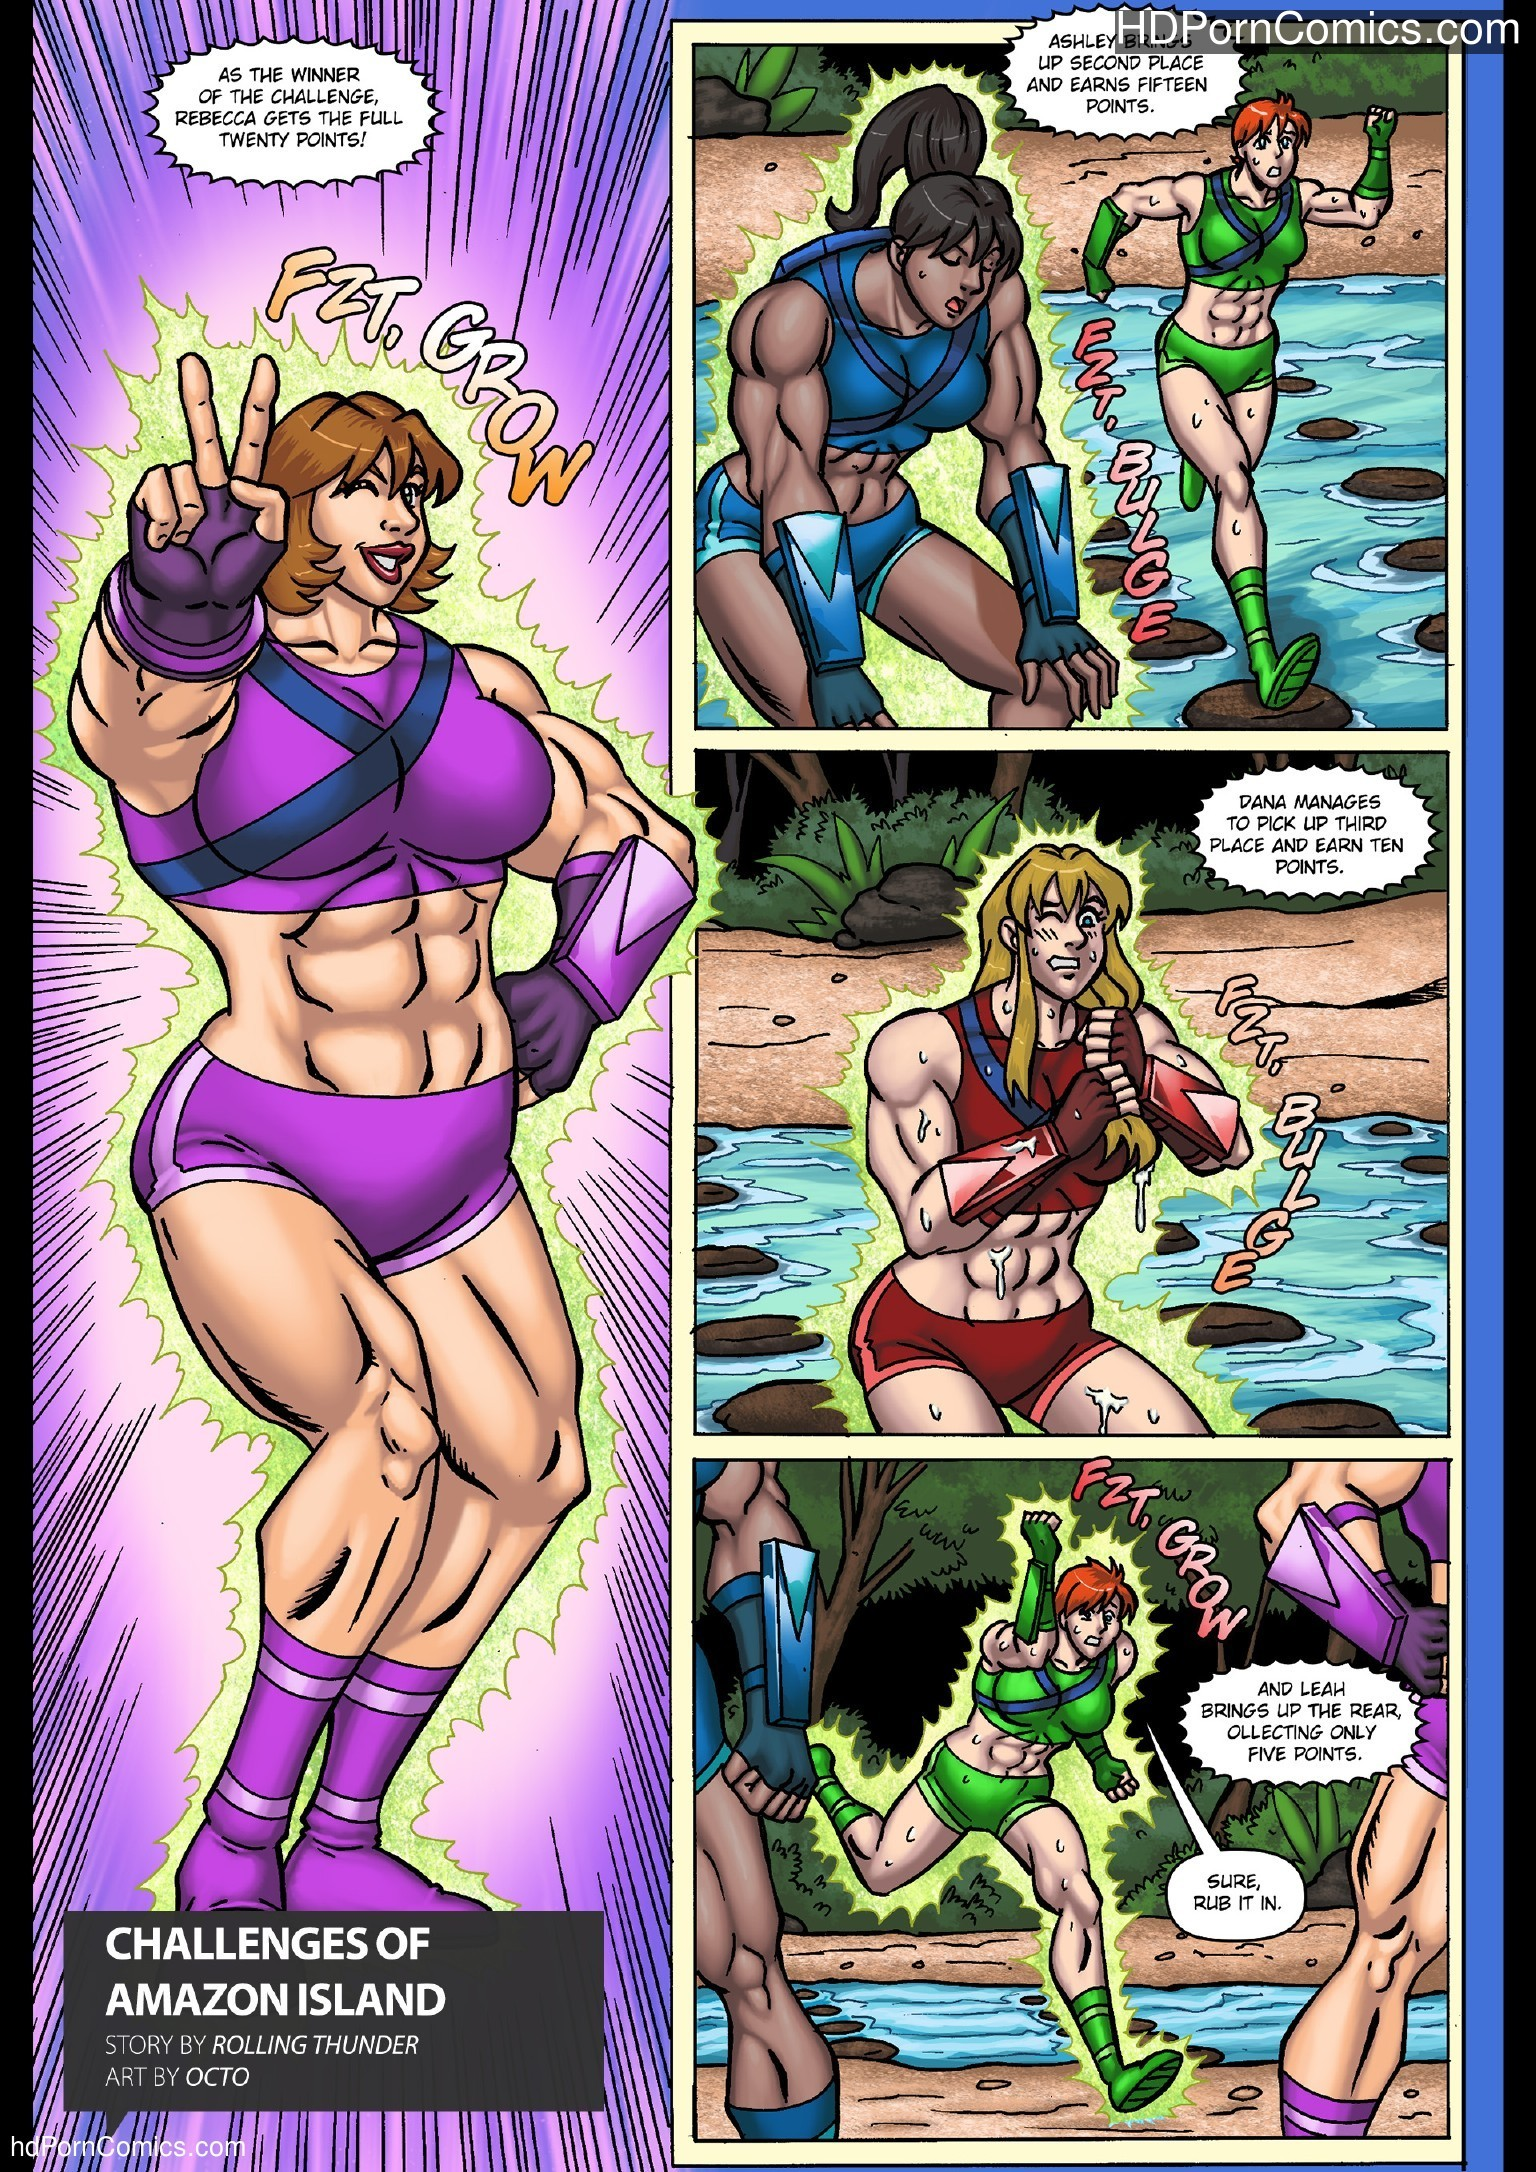 Xxx comics-Schooner The Sailor Girl 221 free sex comic